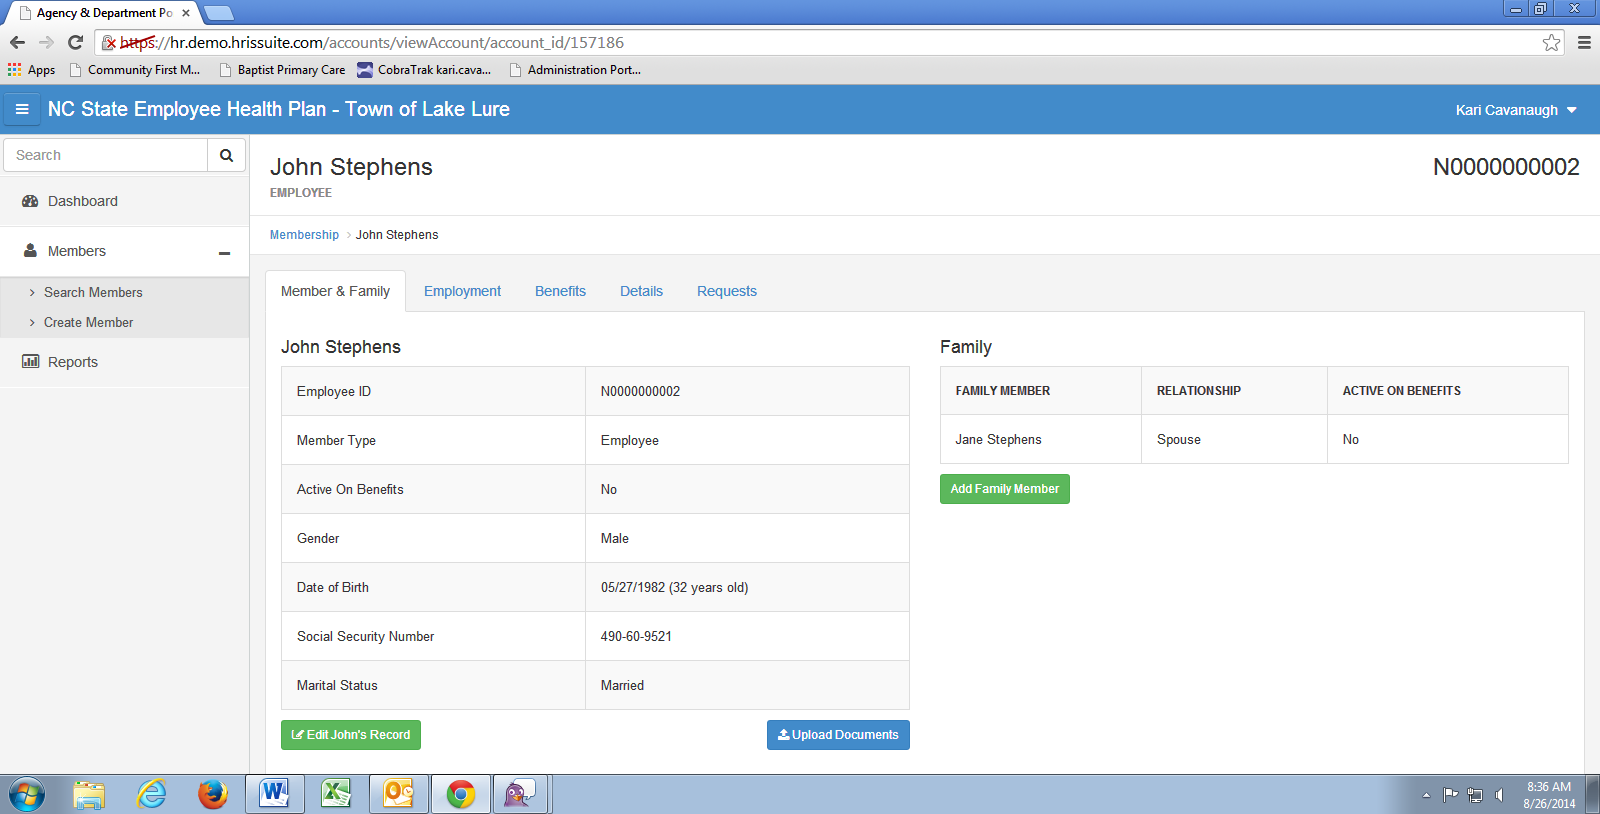 Main screen showing employee info. The HBR may upload supporting documentation on this screen.